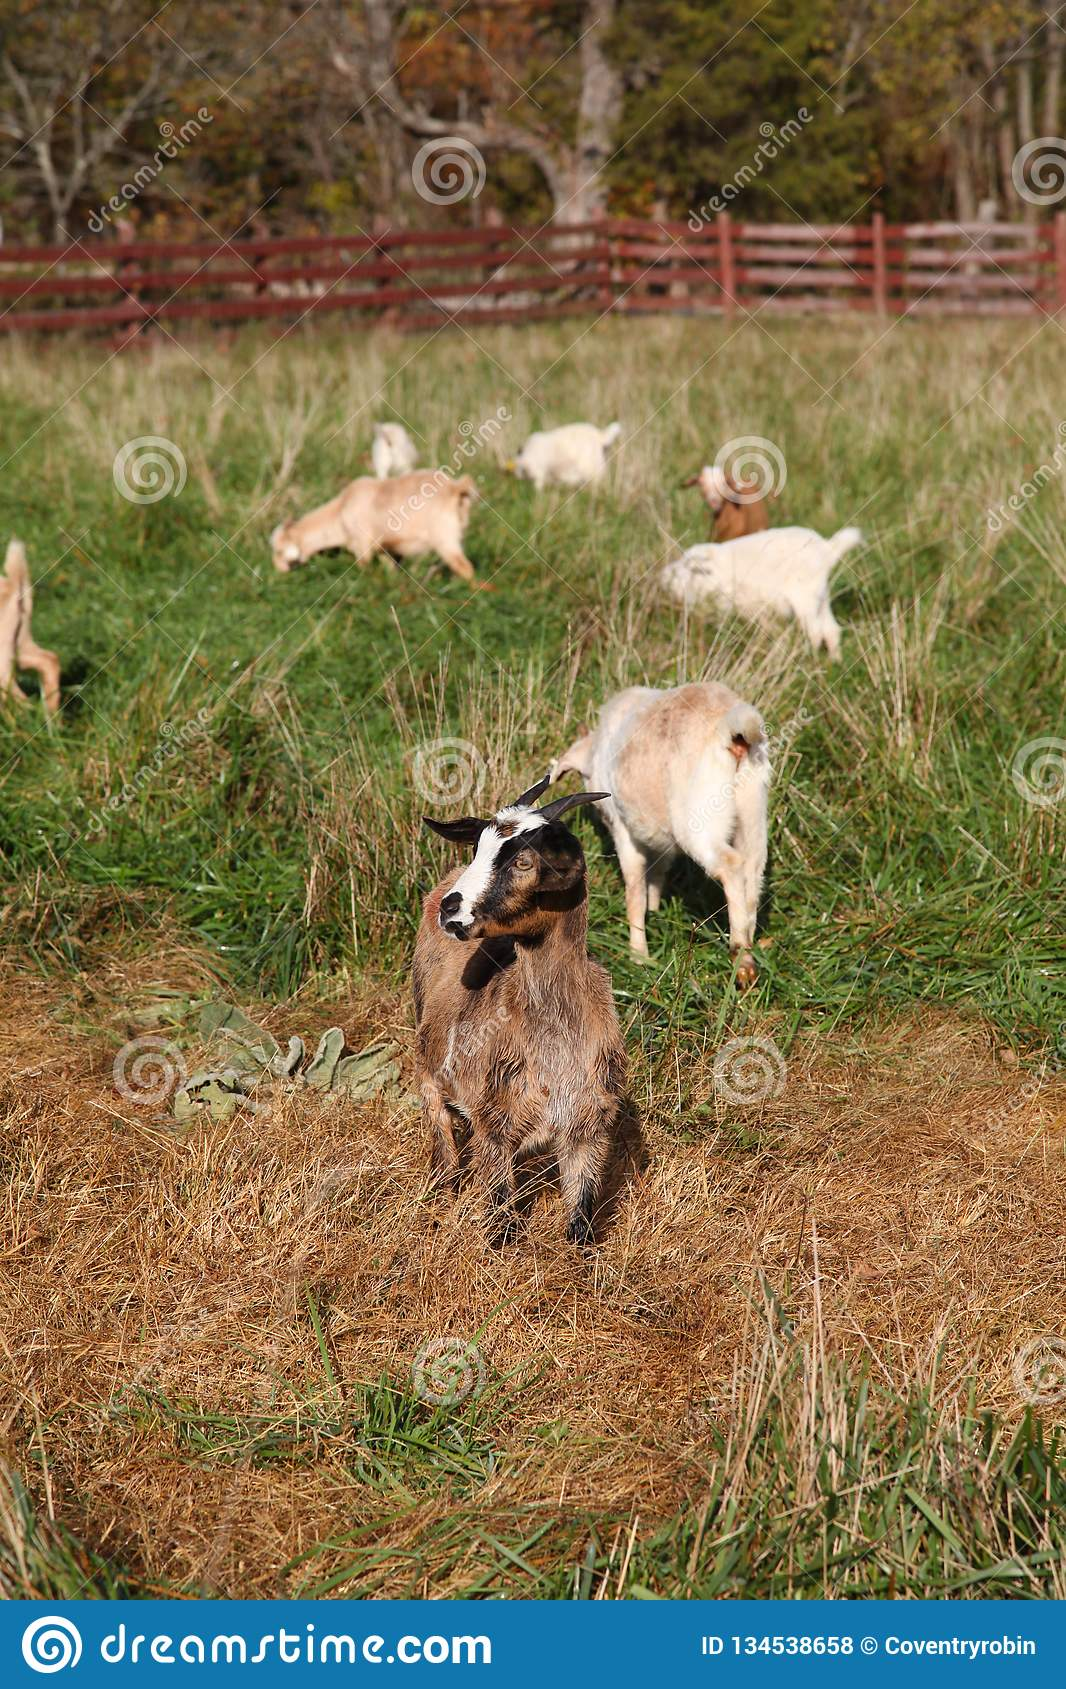 Goats Grazing In A Paddock On A Rural Farm Stock Photo - Image of